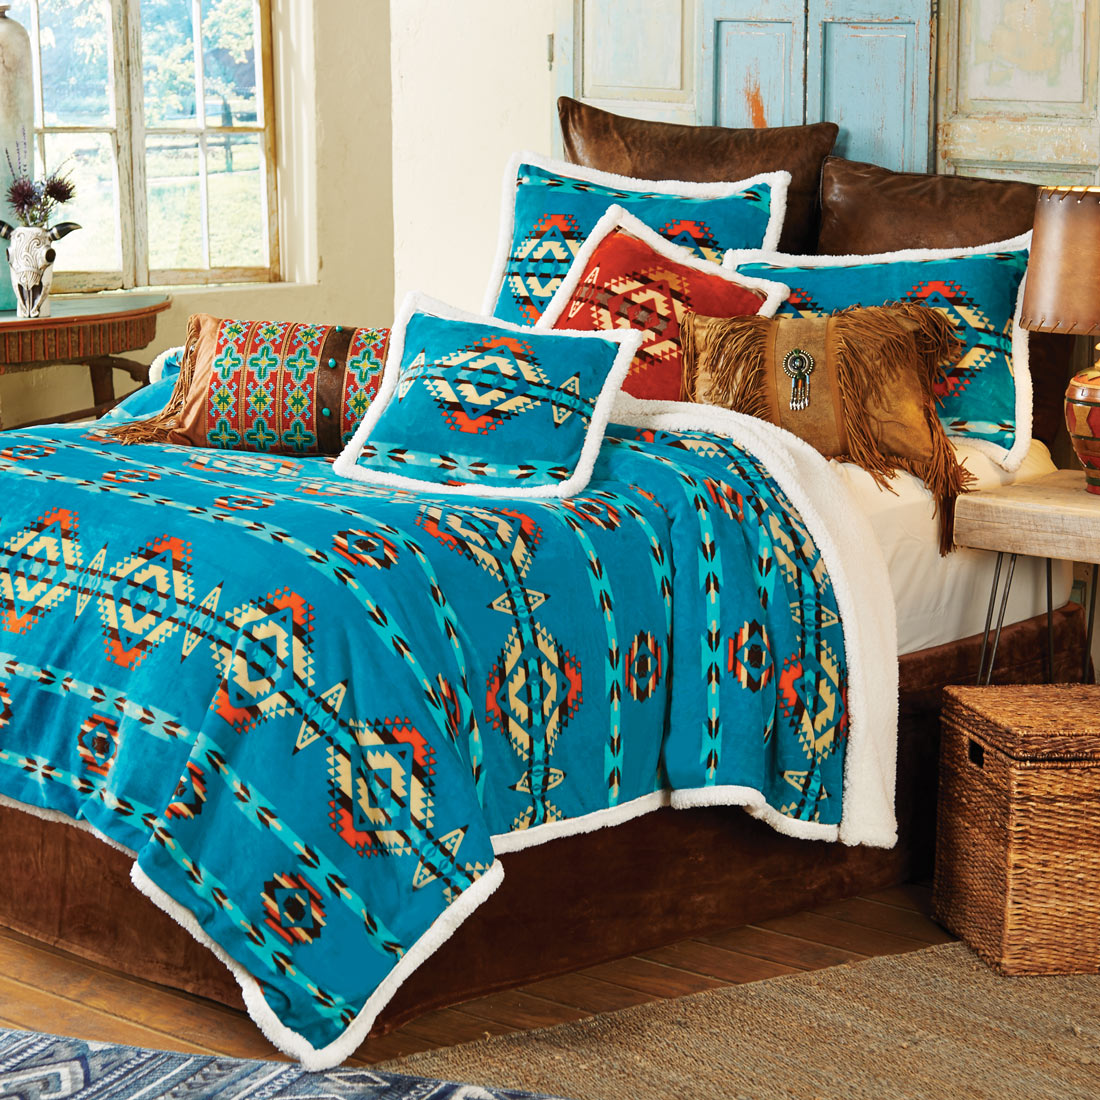 Southwestern Turquoise Plush Bed Set - King - CLEARANCE